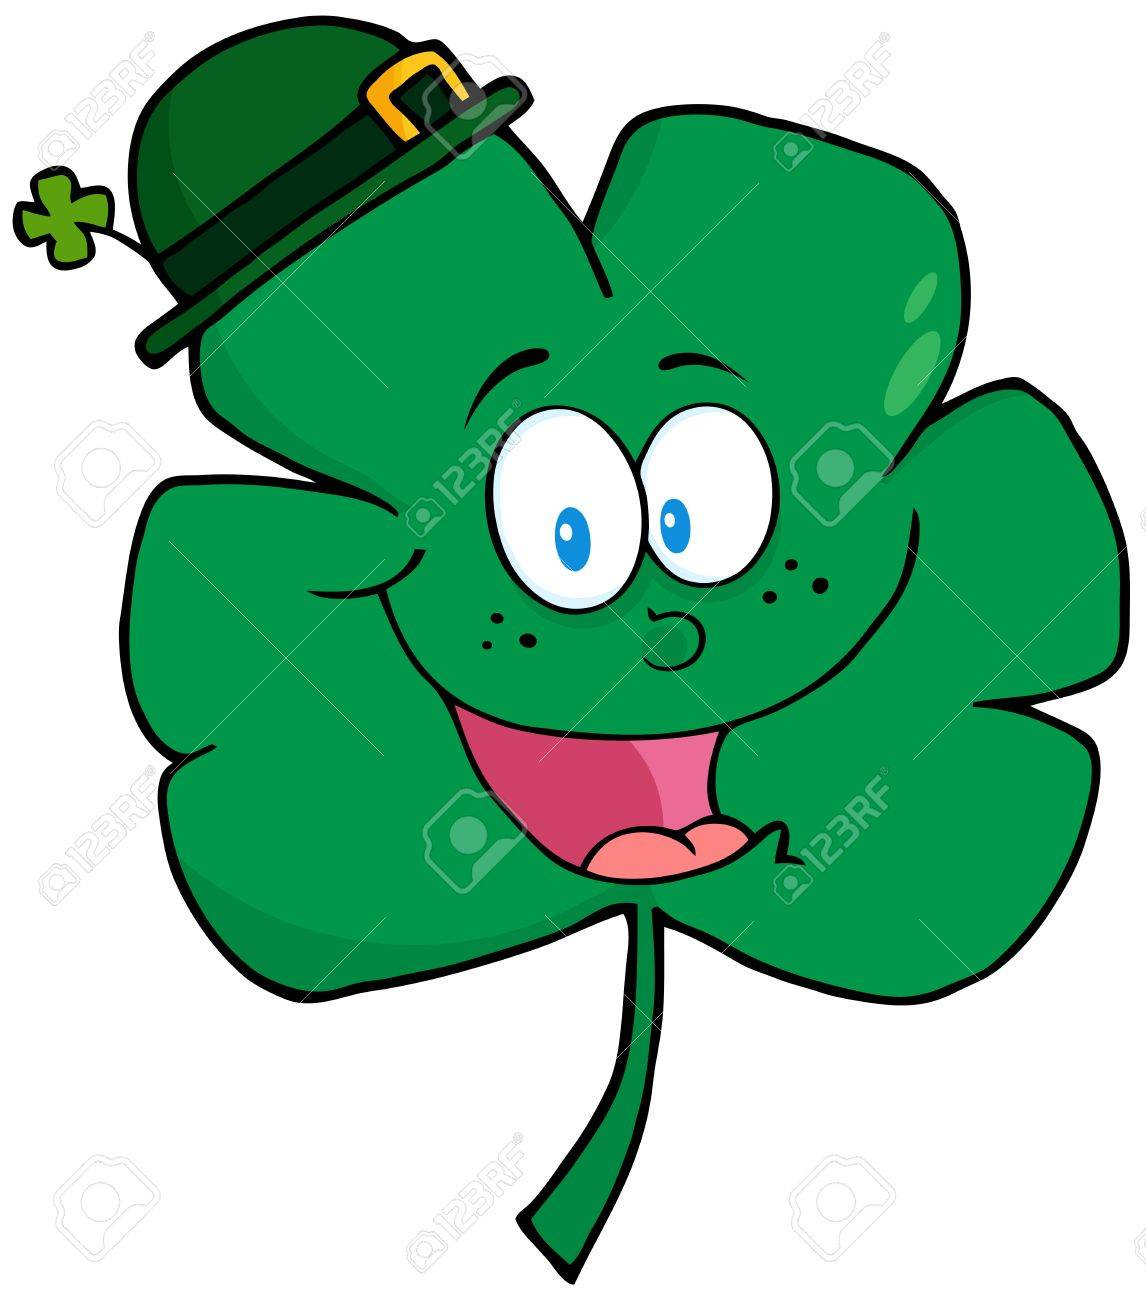 Happy Green Clover Wearing A Green Hat Stock Vector - 12775301